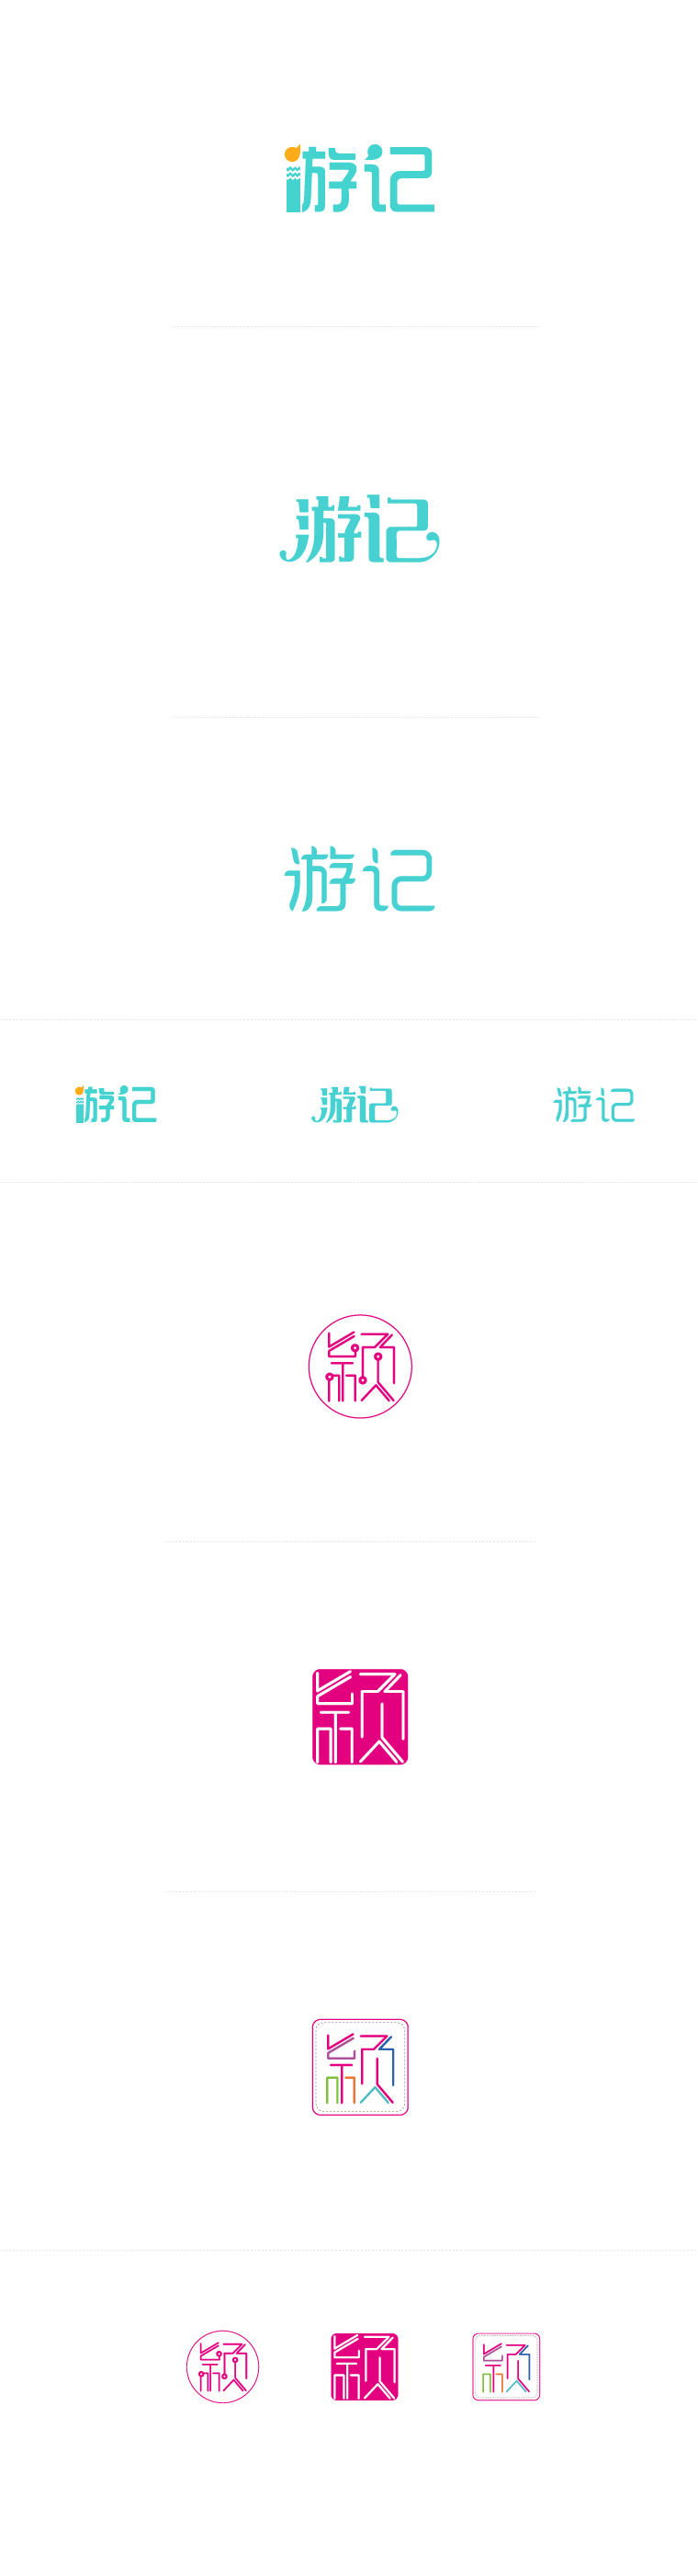 chinesefontdesign.com 2016 09 09 17 11 51 220+ Creative Chinese Font Logo Designs Cool ideas